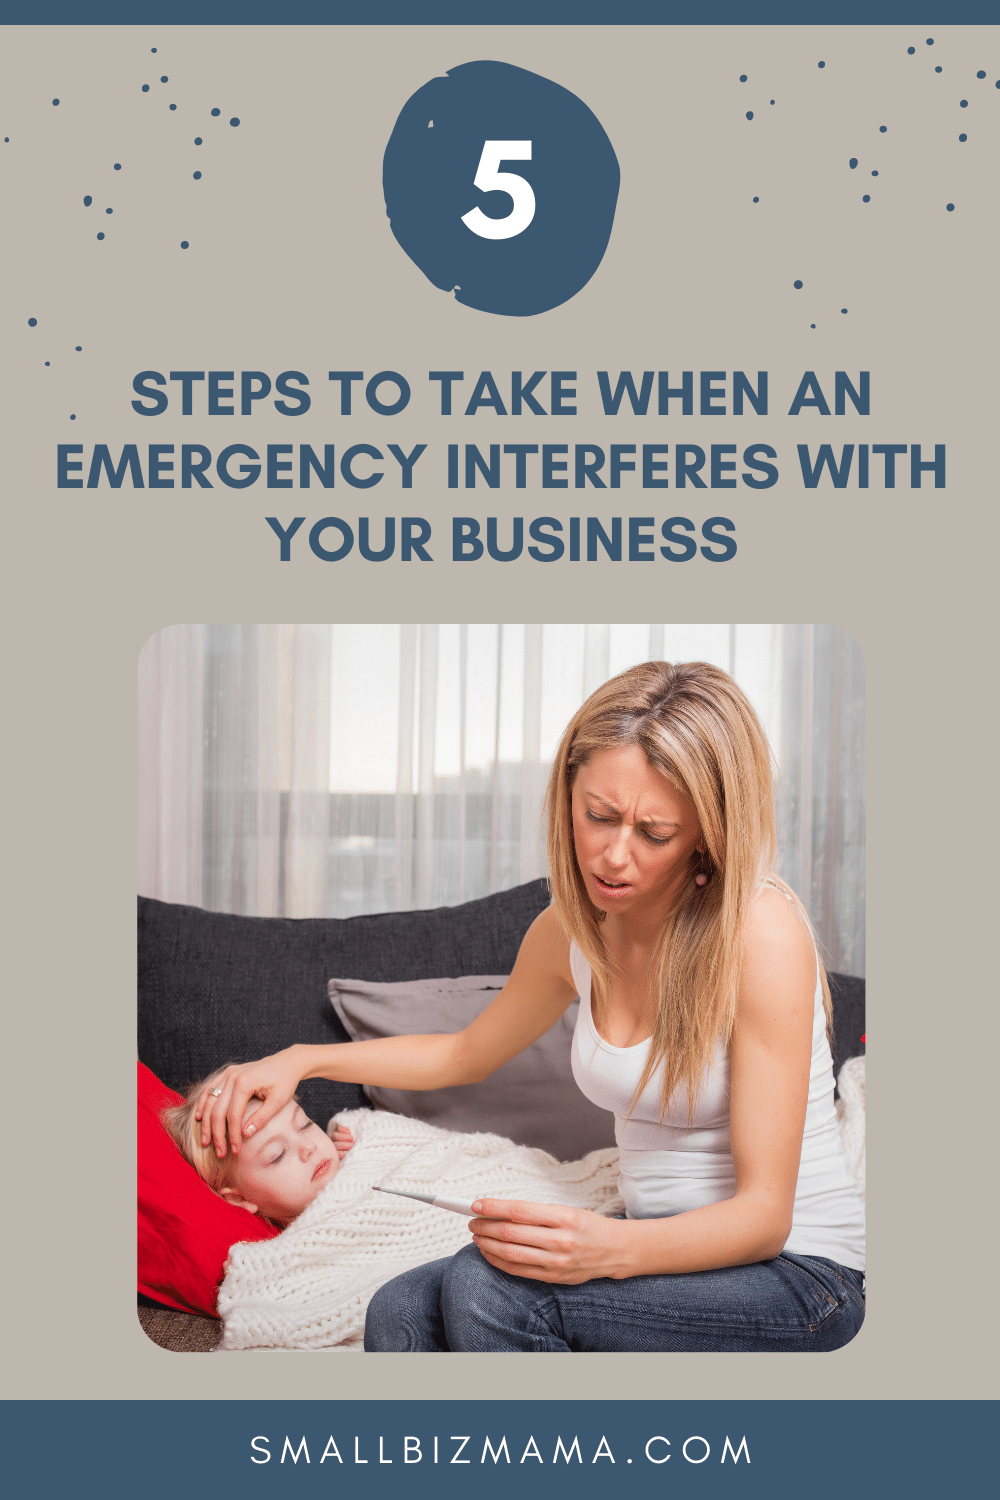 5 steps to take when an emergency interferes with your business